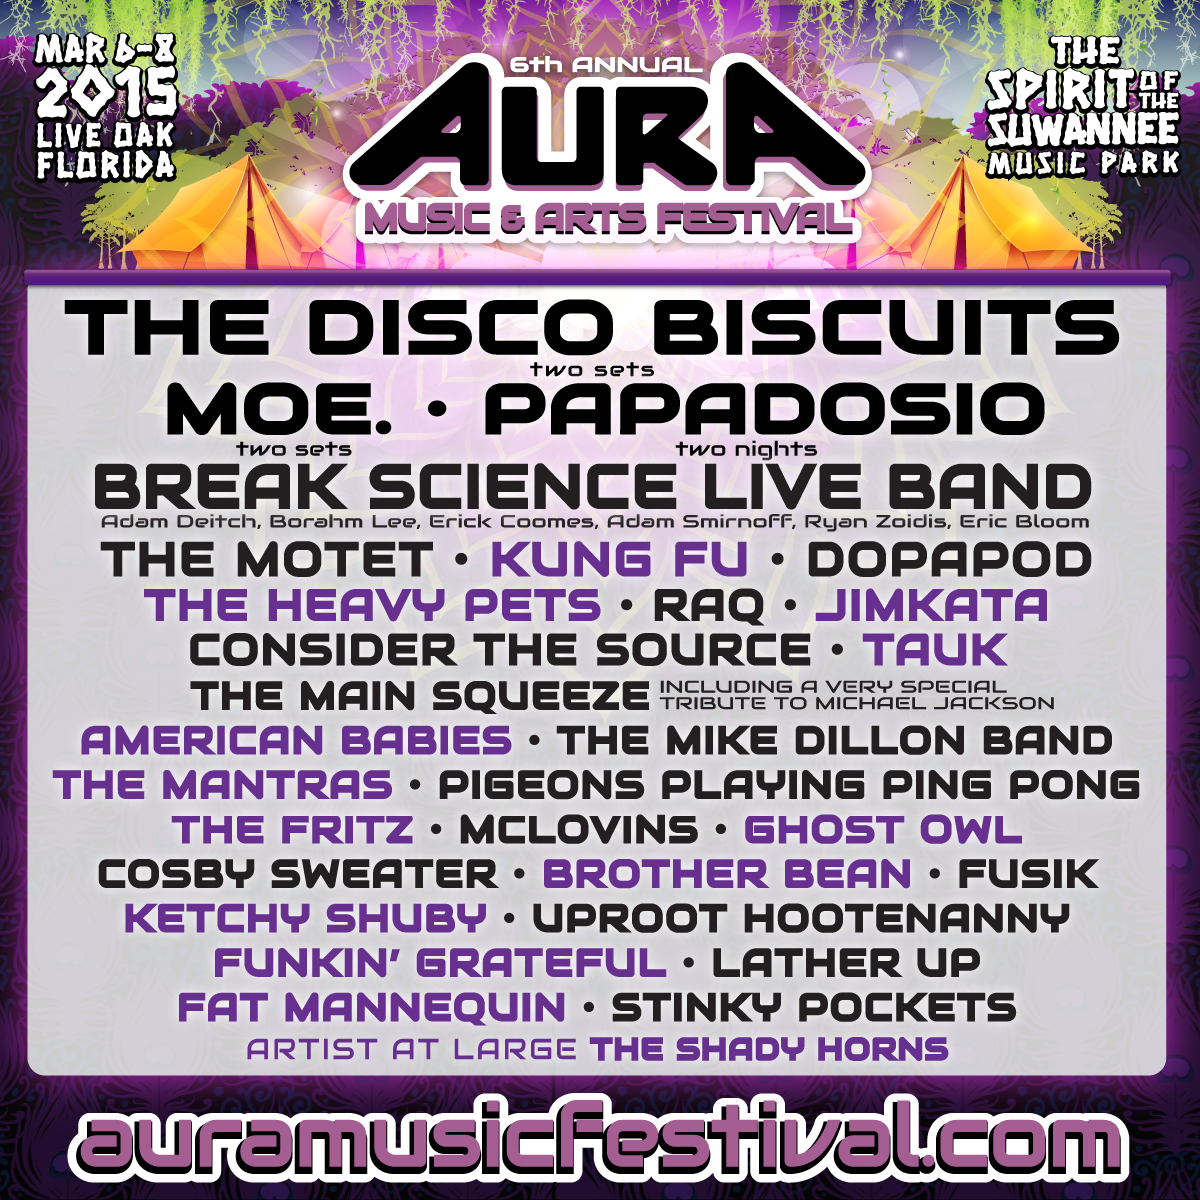 AURA Music & Arts Festival Adds Break Science Live Band, The Motet, The Heavy Pets, TAUK, The Fritz and More!